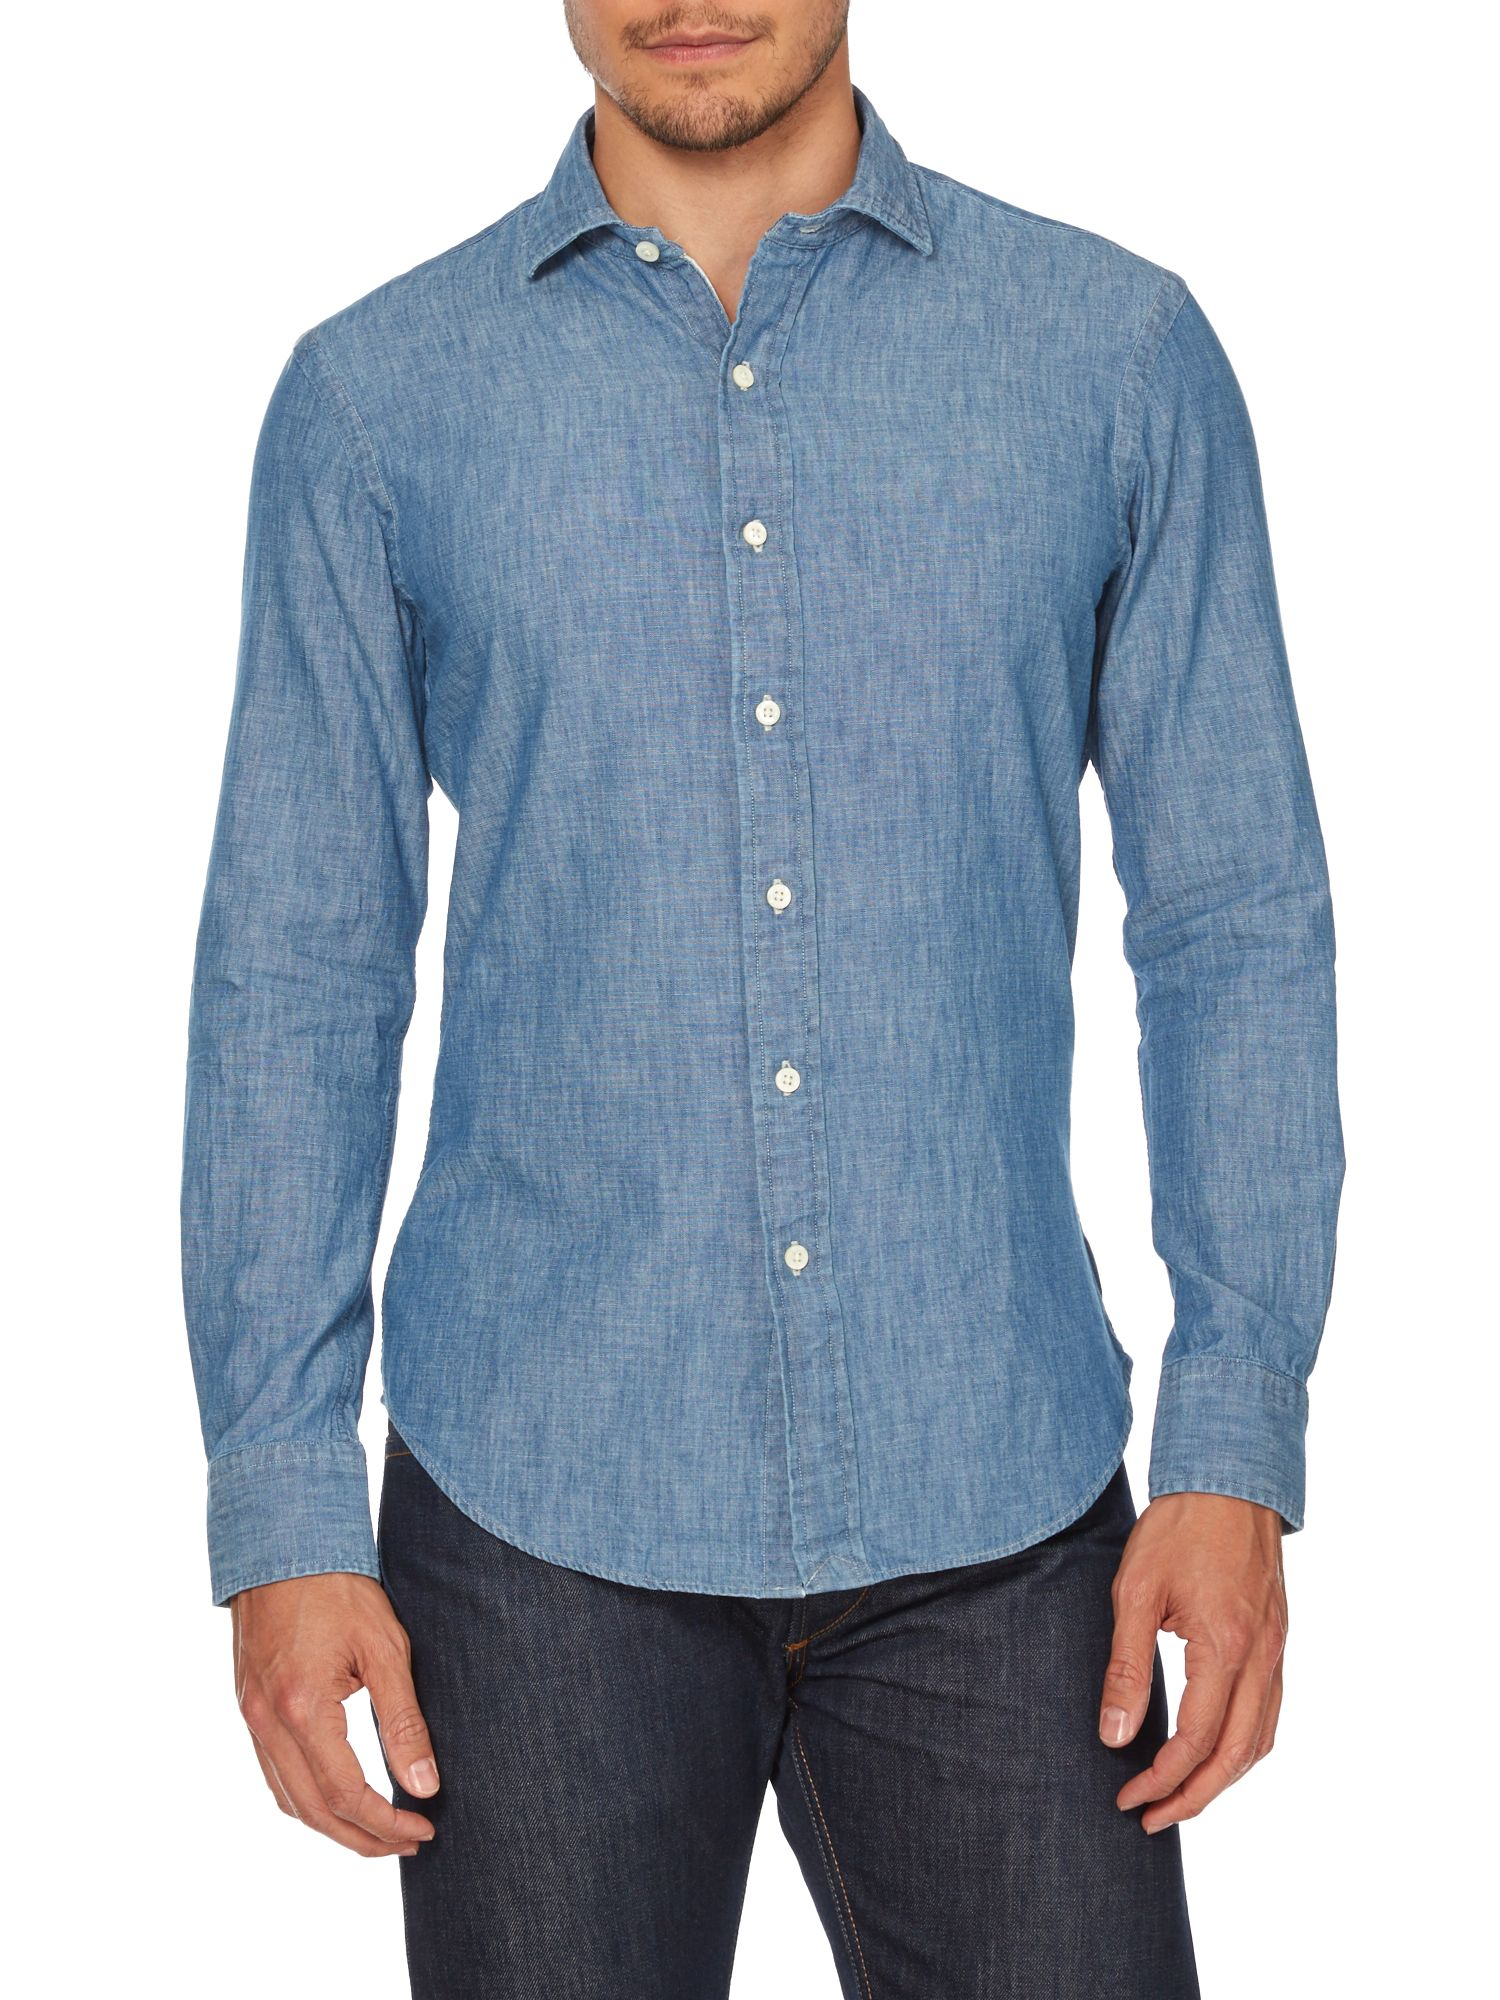 Polo ralph lauren long sleeve slim fit spread collar shirt for What is a spread collar shirt